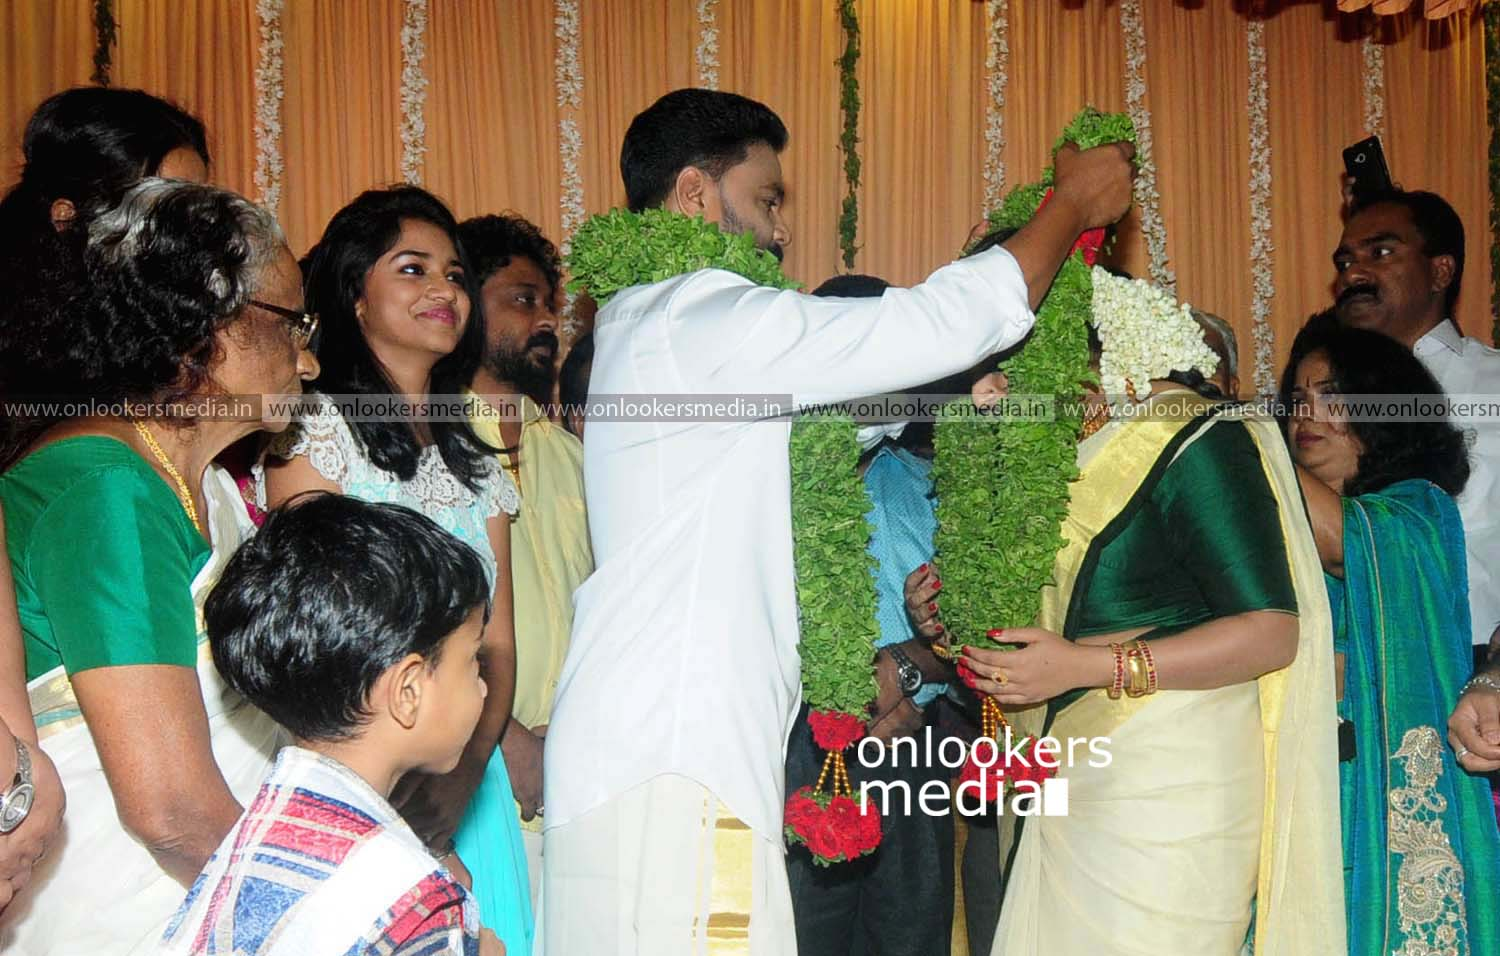 http://onlookersmedia.in/wp-content/uploads/2016/11/Dileep-Kavya-Madhavan-Wedding-Stills-Photos-17.jpg